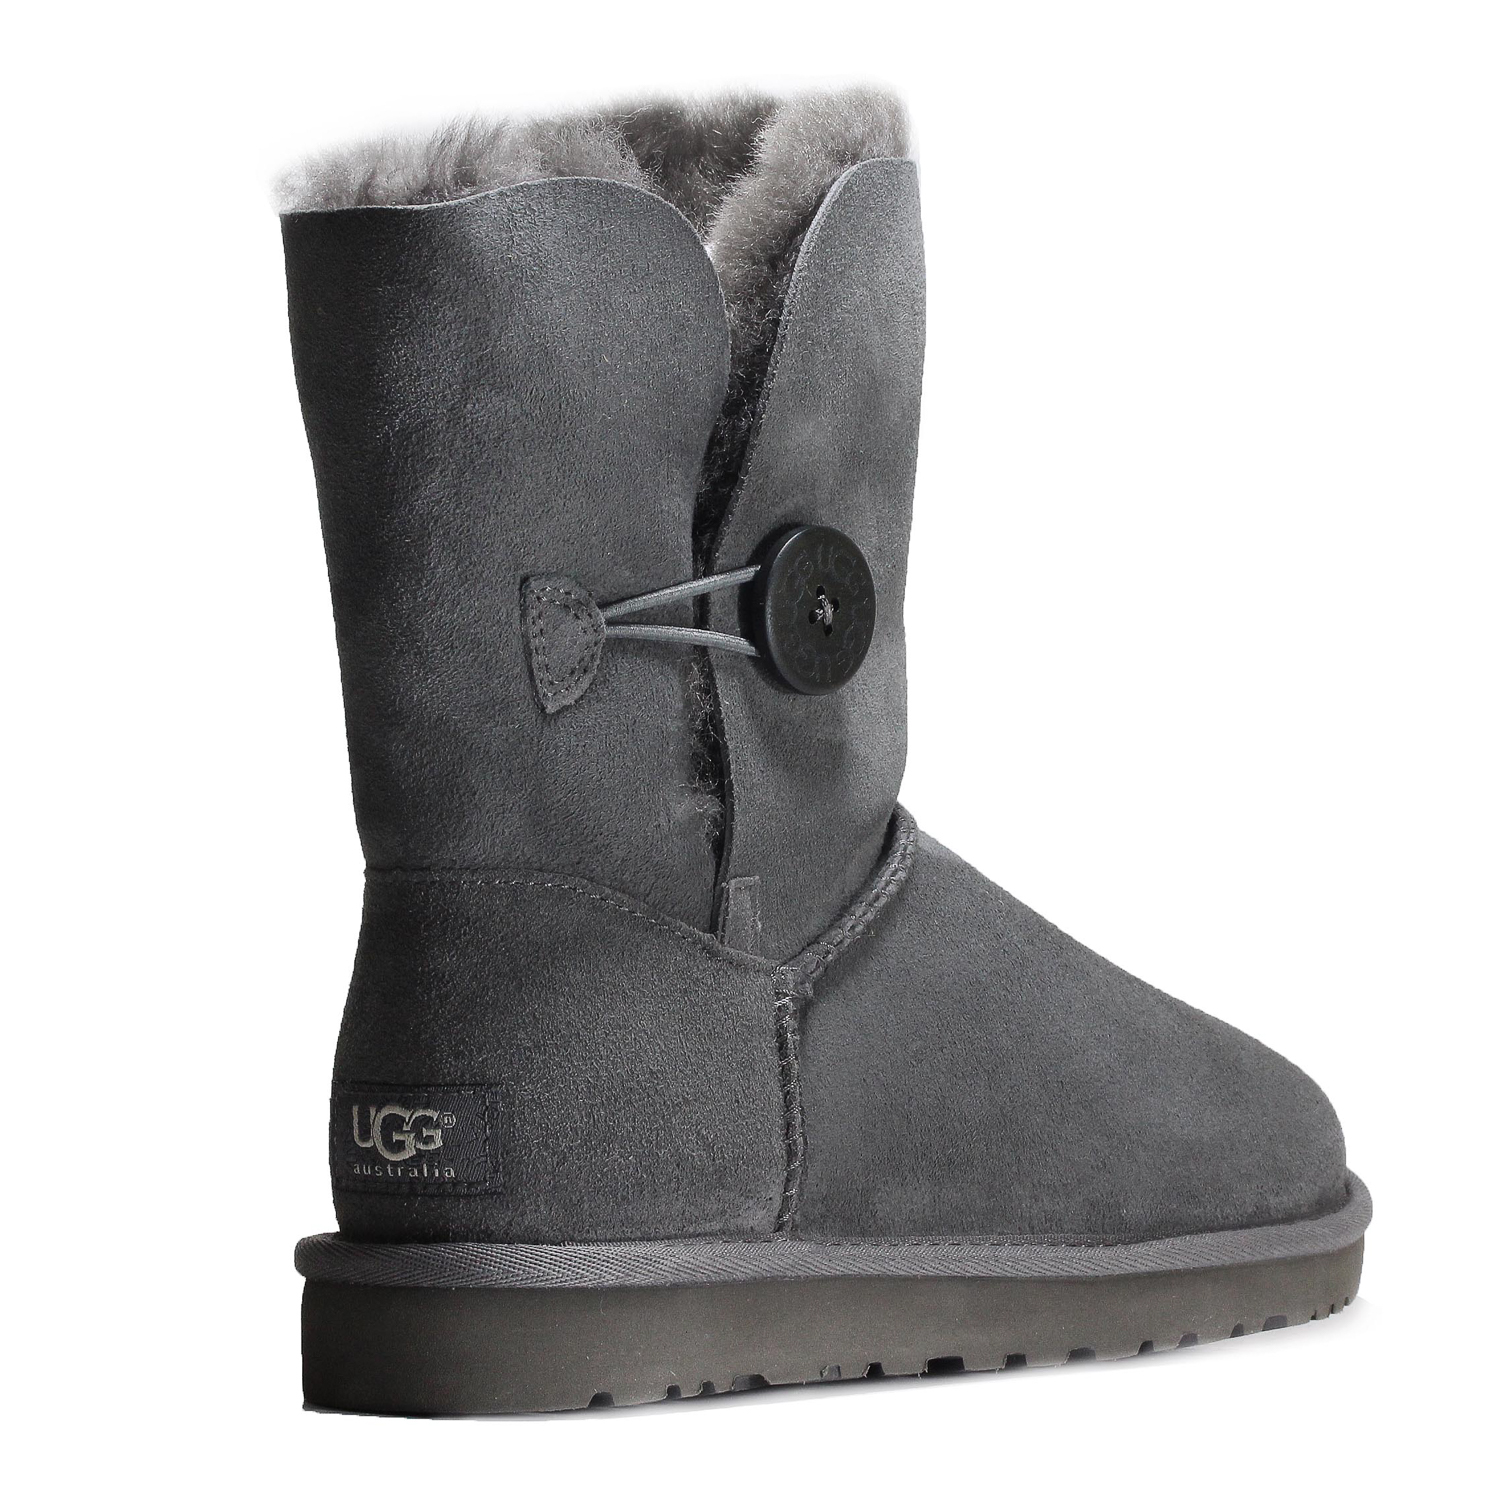 9abf8bbb0af Details about Ugg Women's Bailey Button Ankle Boot Shoes 5803W Grey